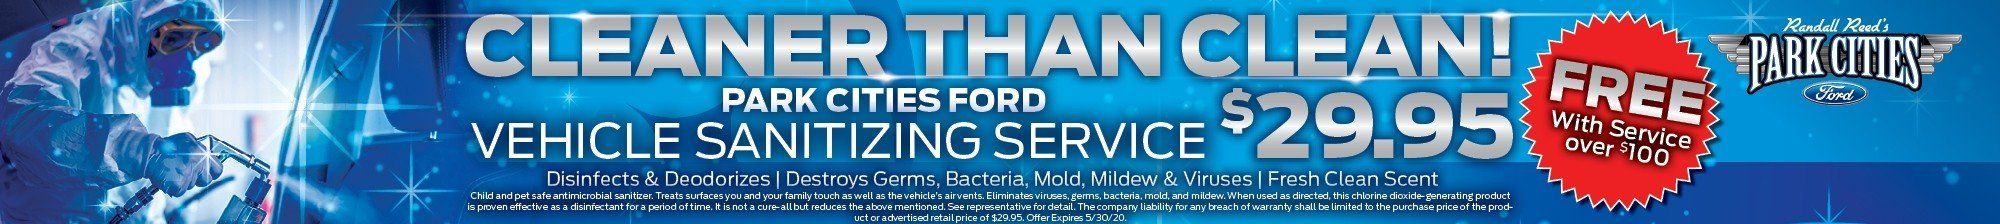 Cleaner Than Clean Service Offer at Park Cities Ford of Dallas - Your Dallas Ford Dealer